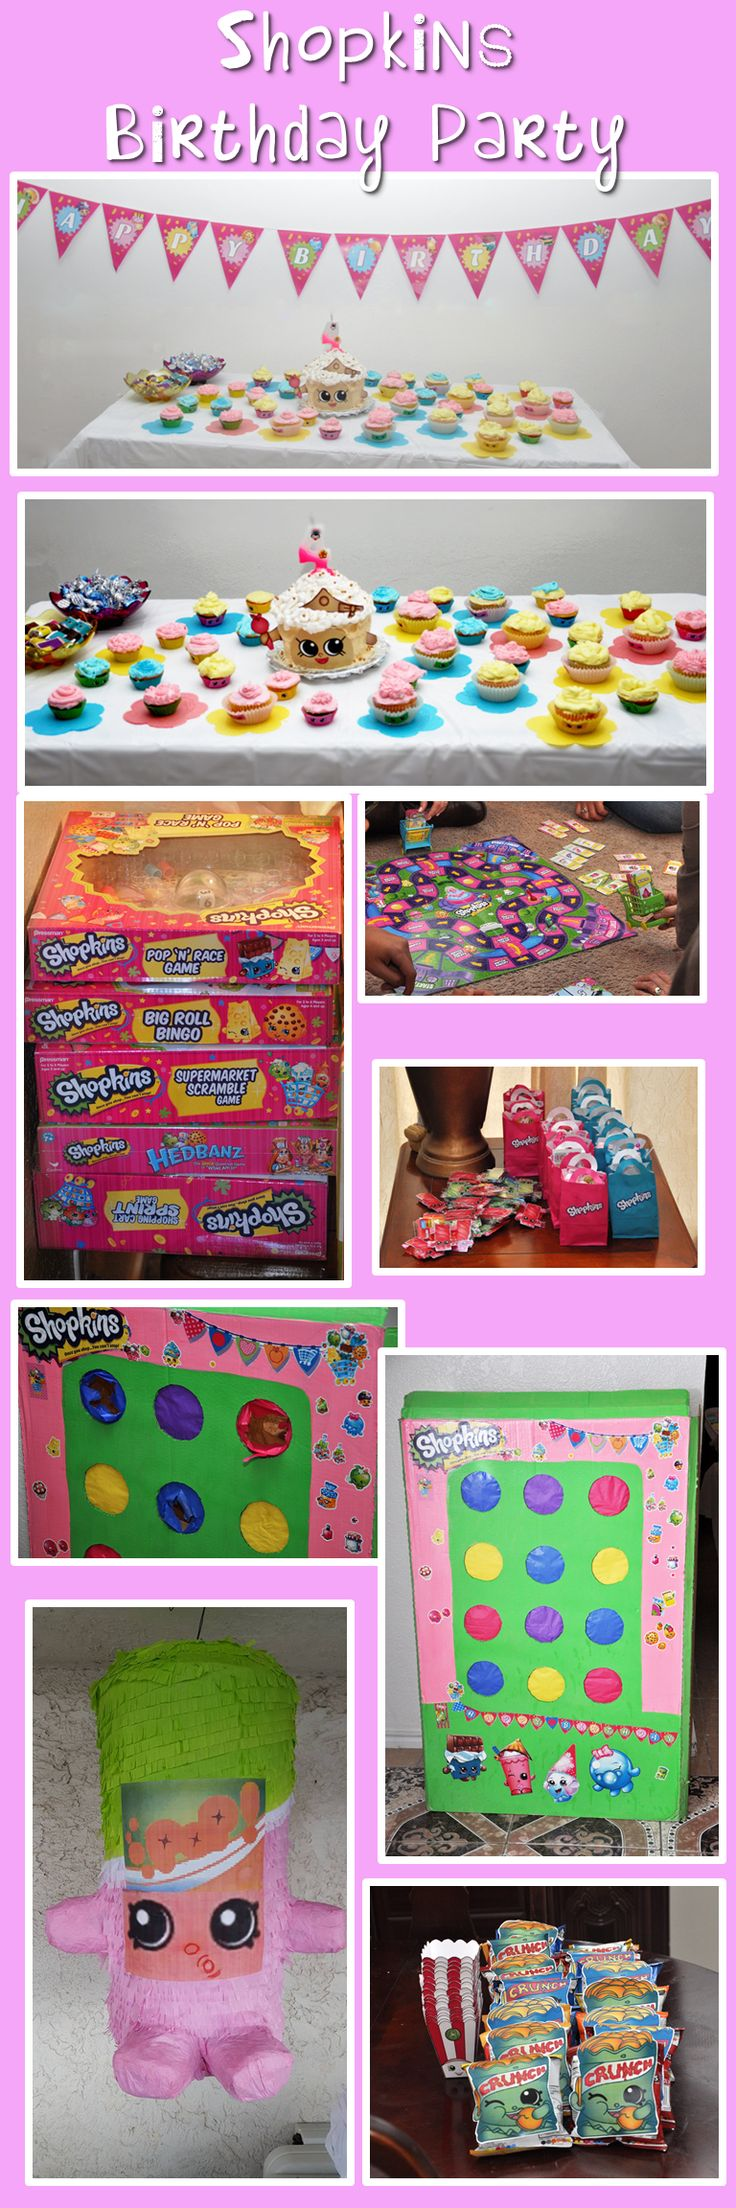 Shopkins Birthday Party -On a Budget- Ideas